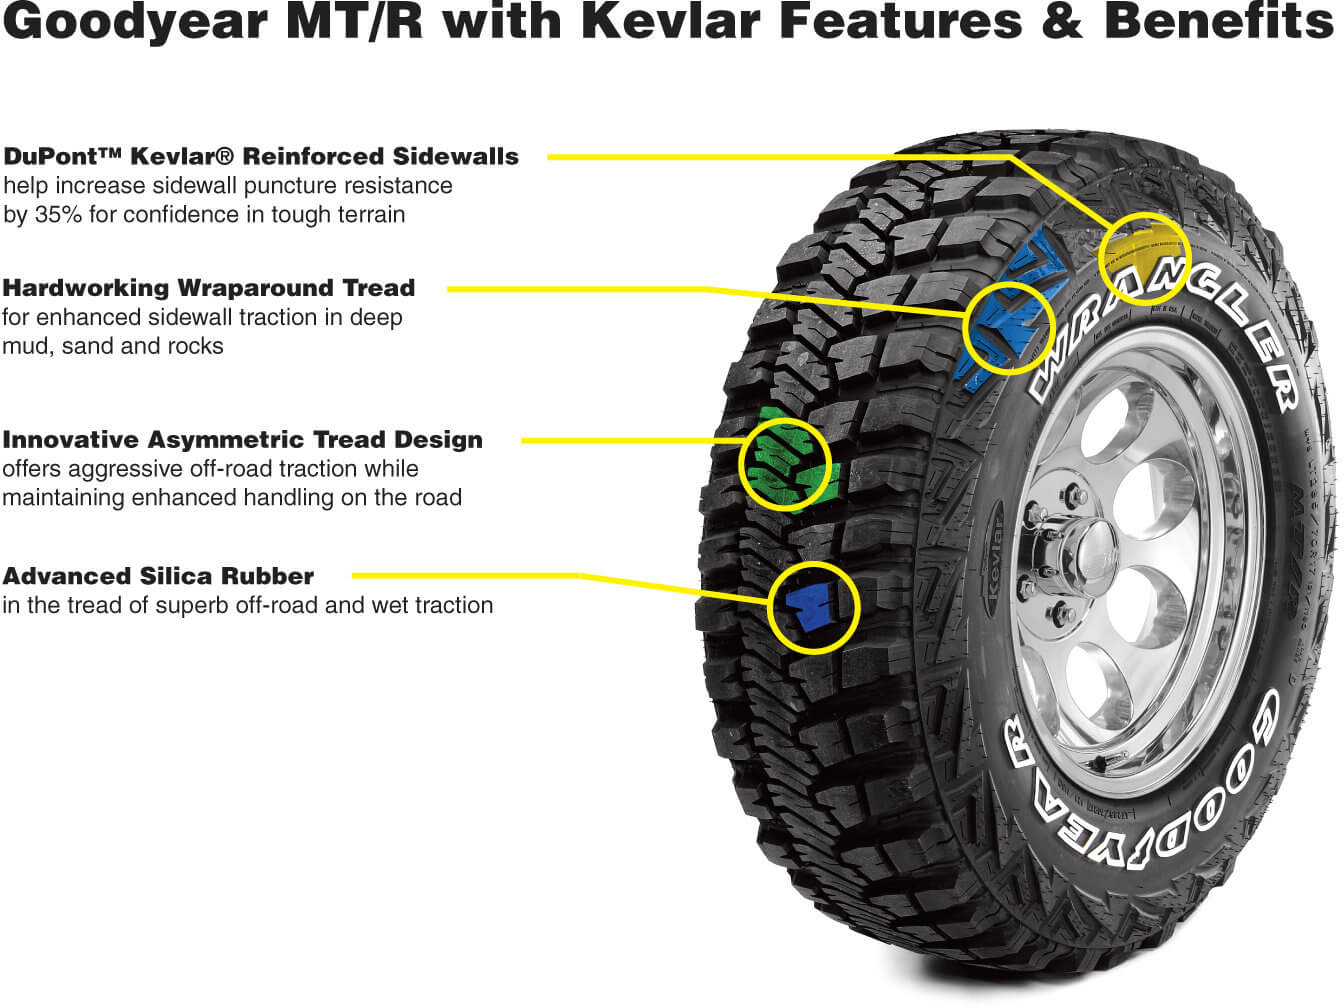 Tire Technology: How Technology has improved tires